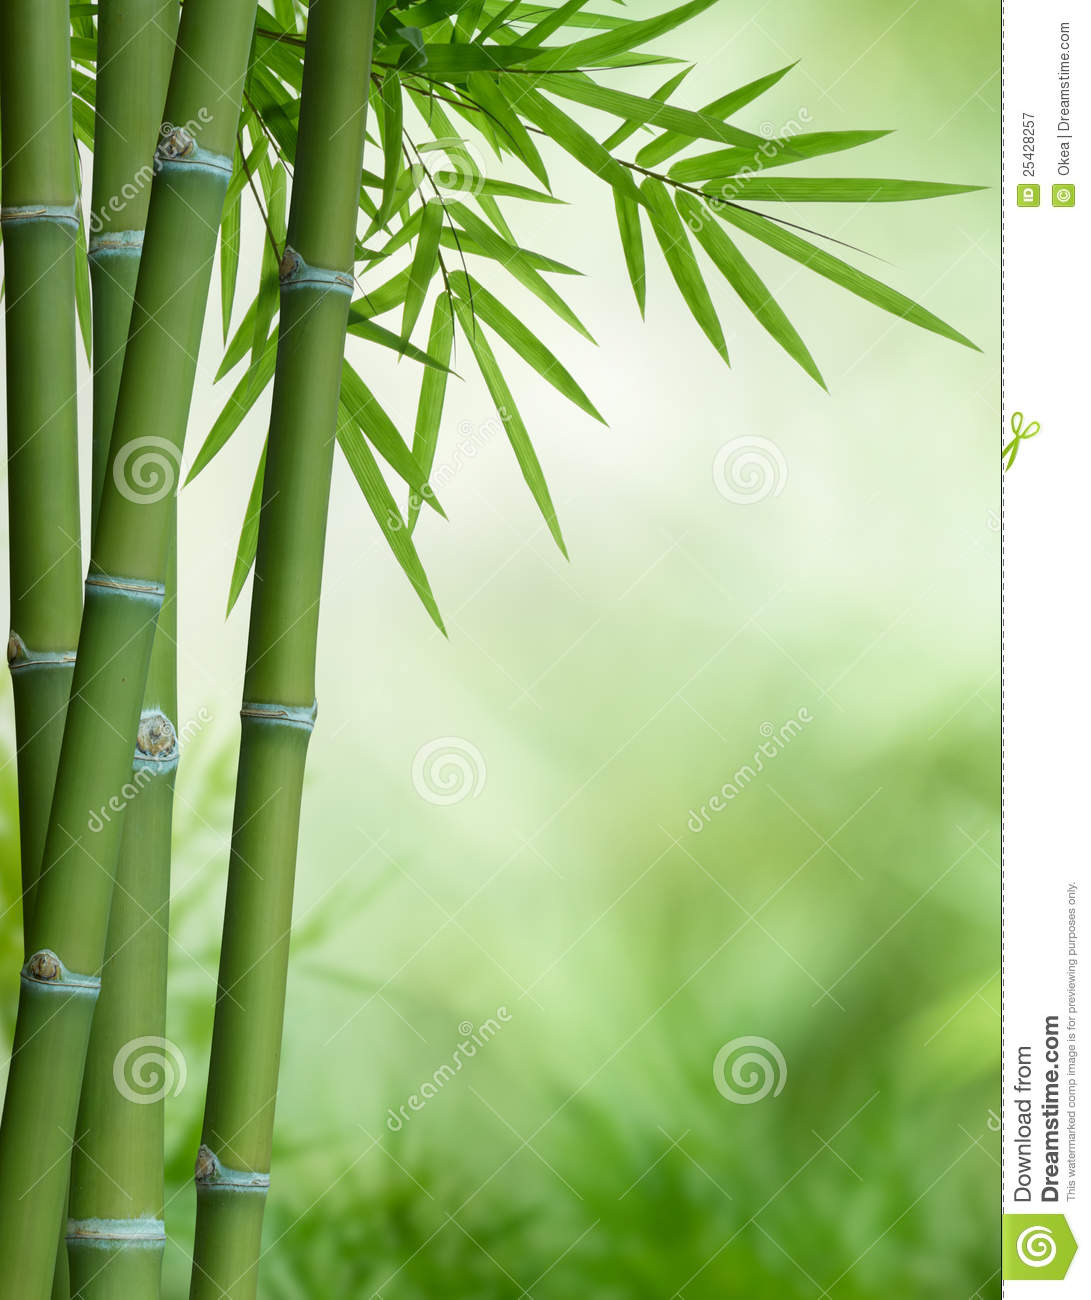 how to make lucky bamboo grow leaves